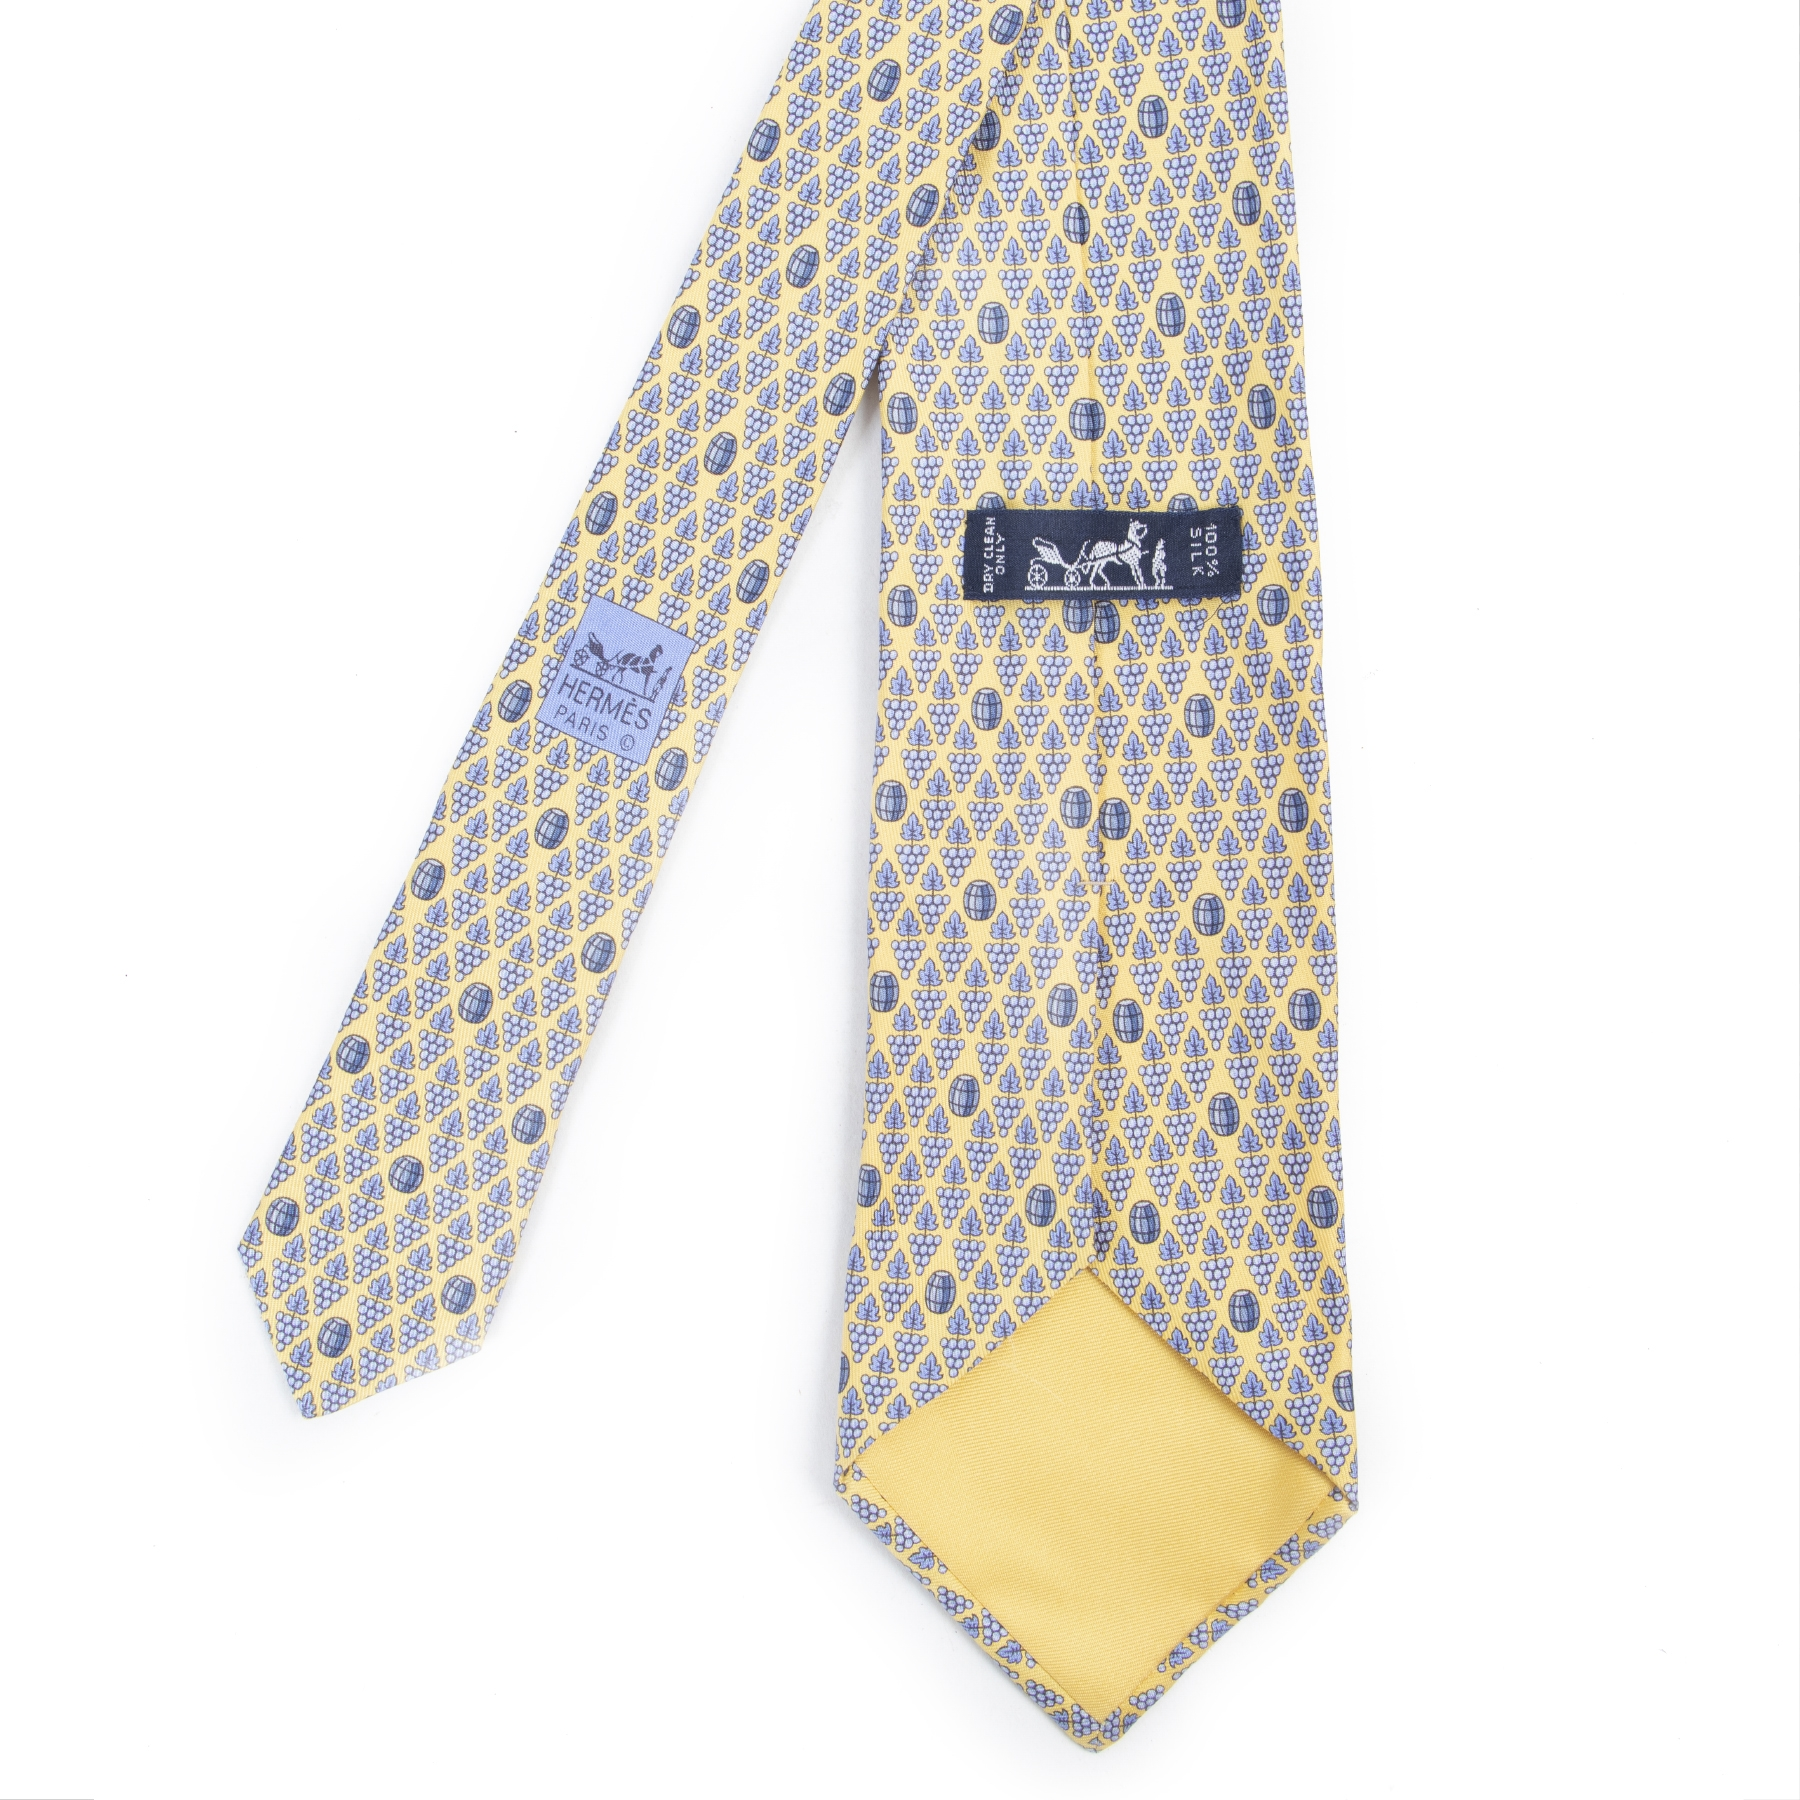 Authentic secondhand Hermès Yellow Blue Pattern Silk Tie designer accessories fashion luxury vintage webshop safe secure online shopping